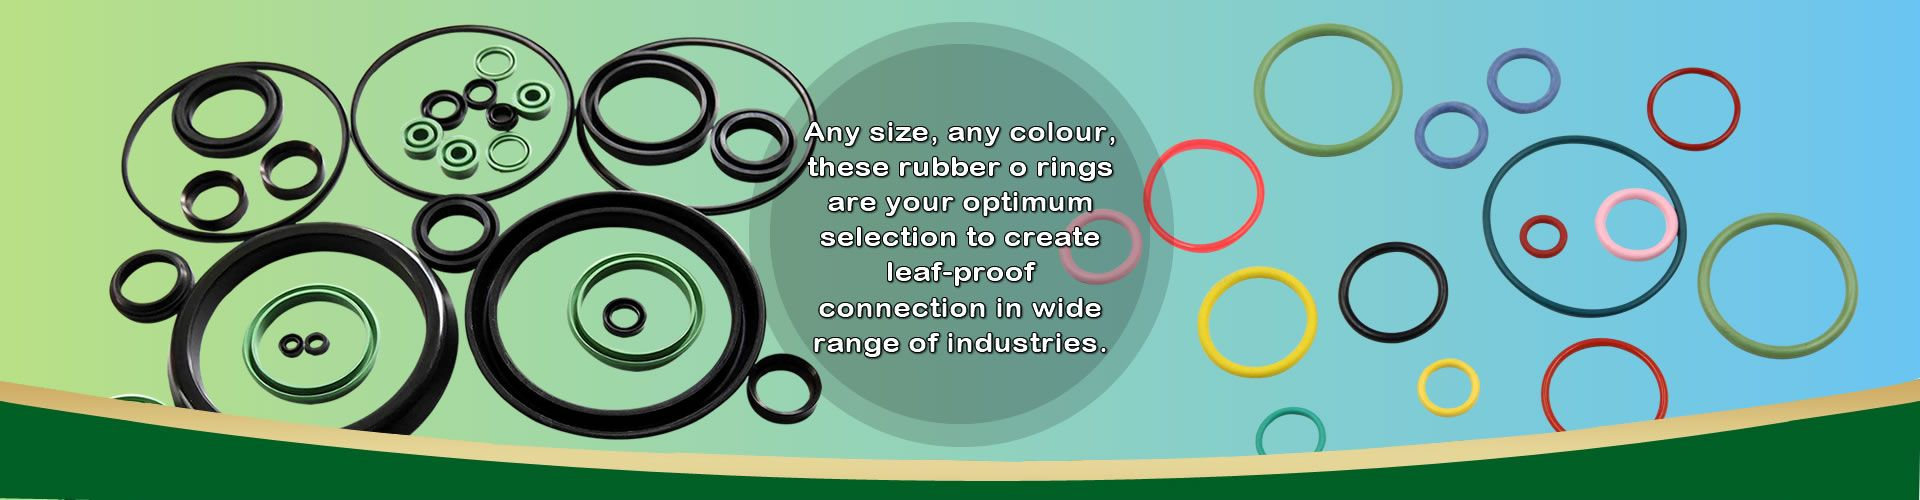 There are several rubber o rings in different colours, black, red, yellow, green, purple, etc.